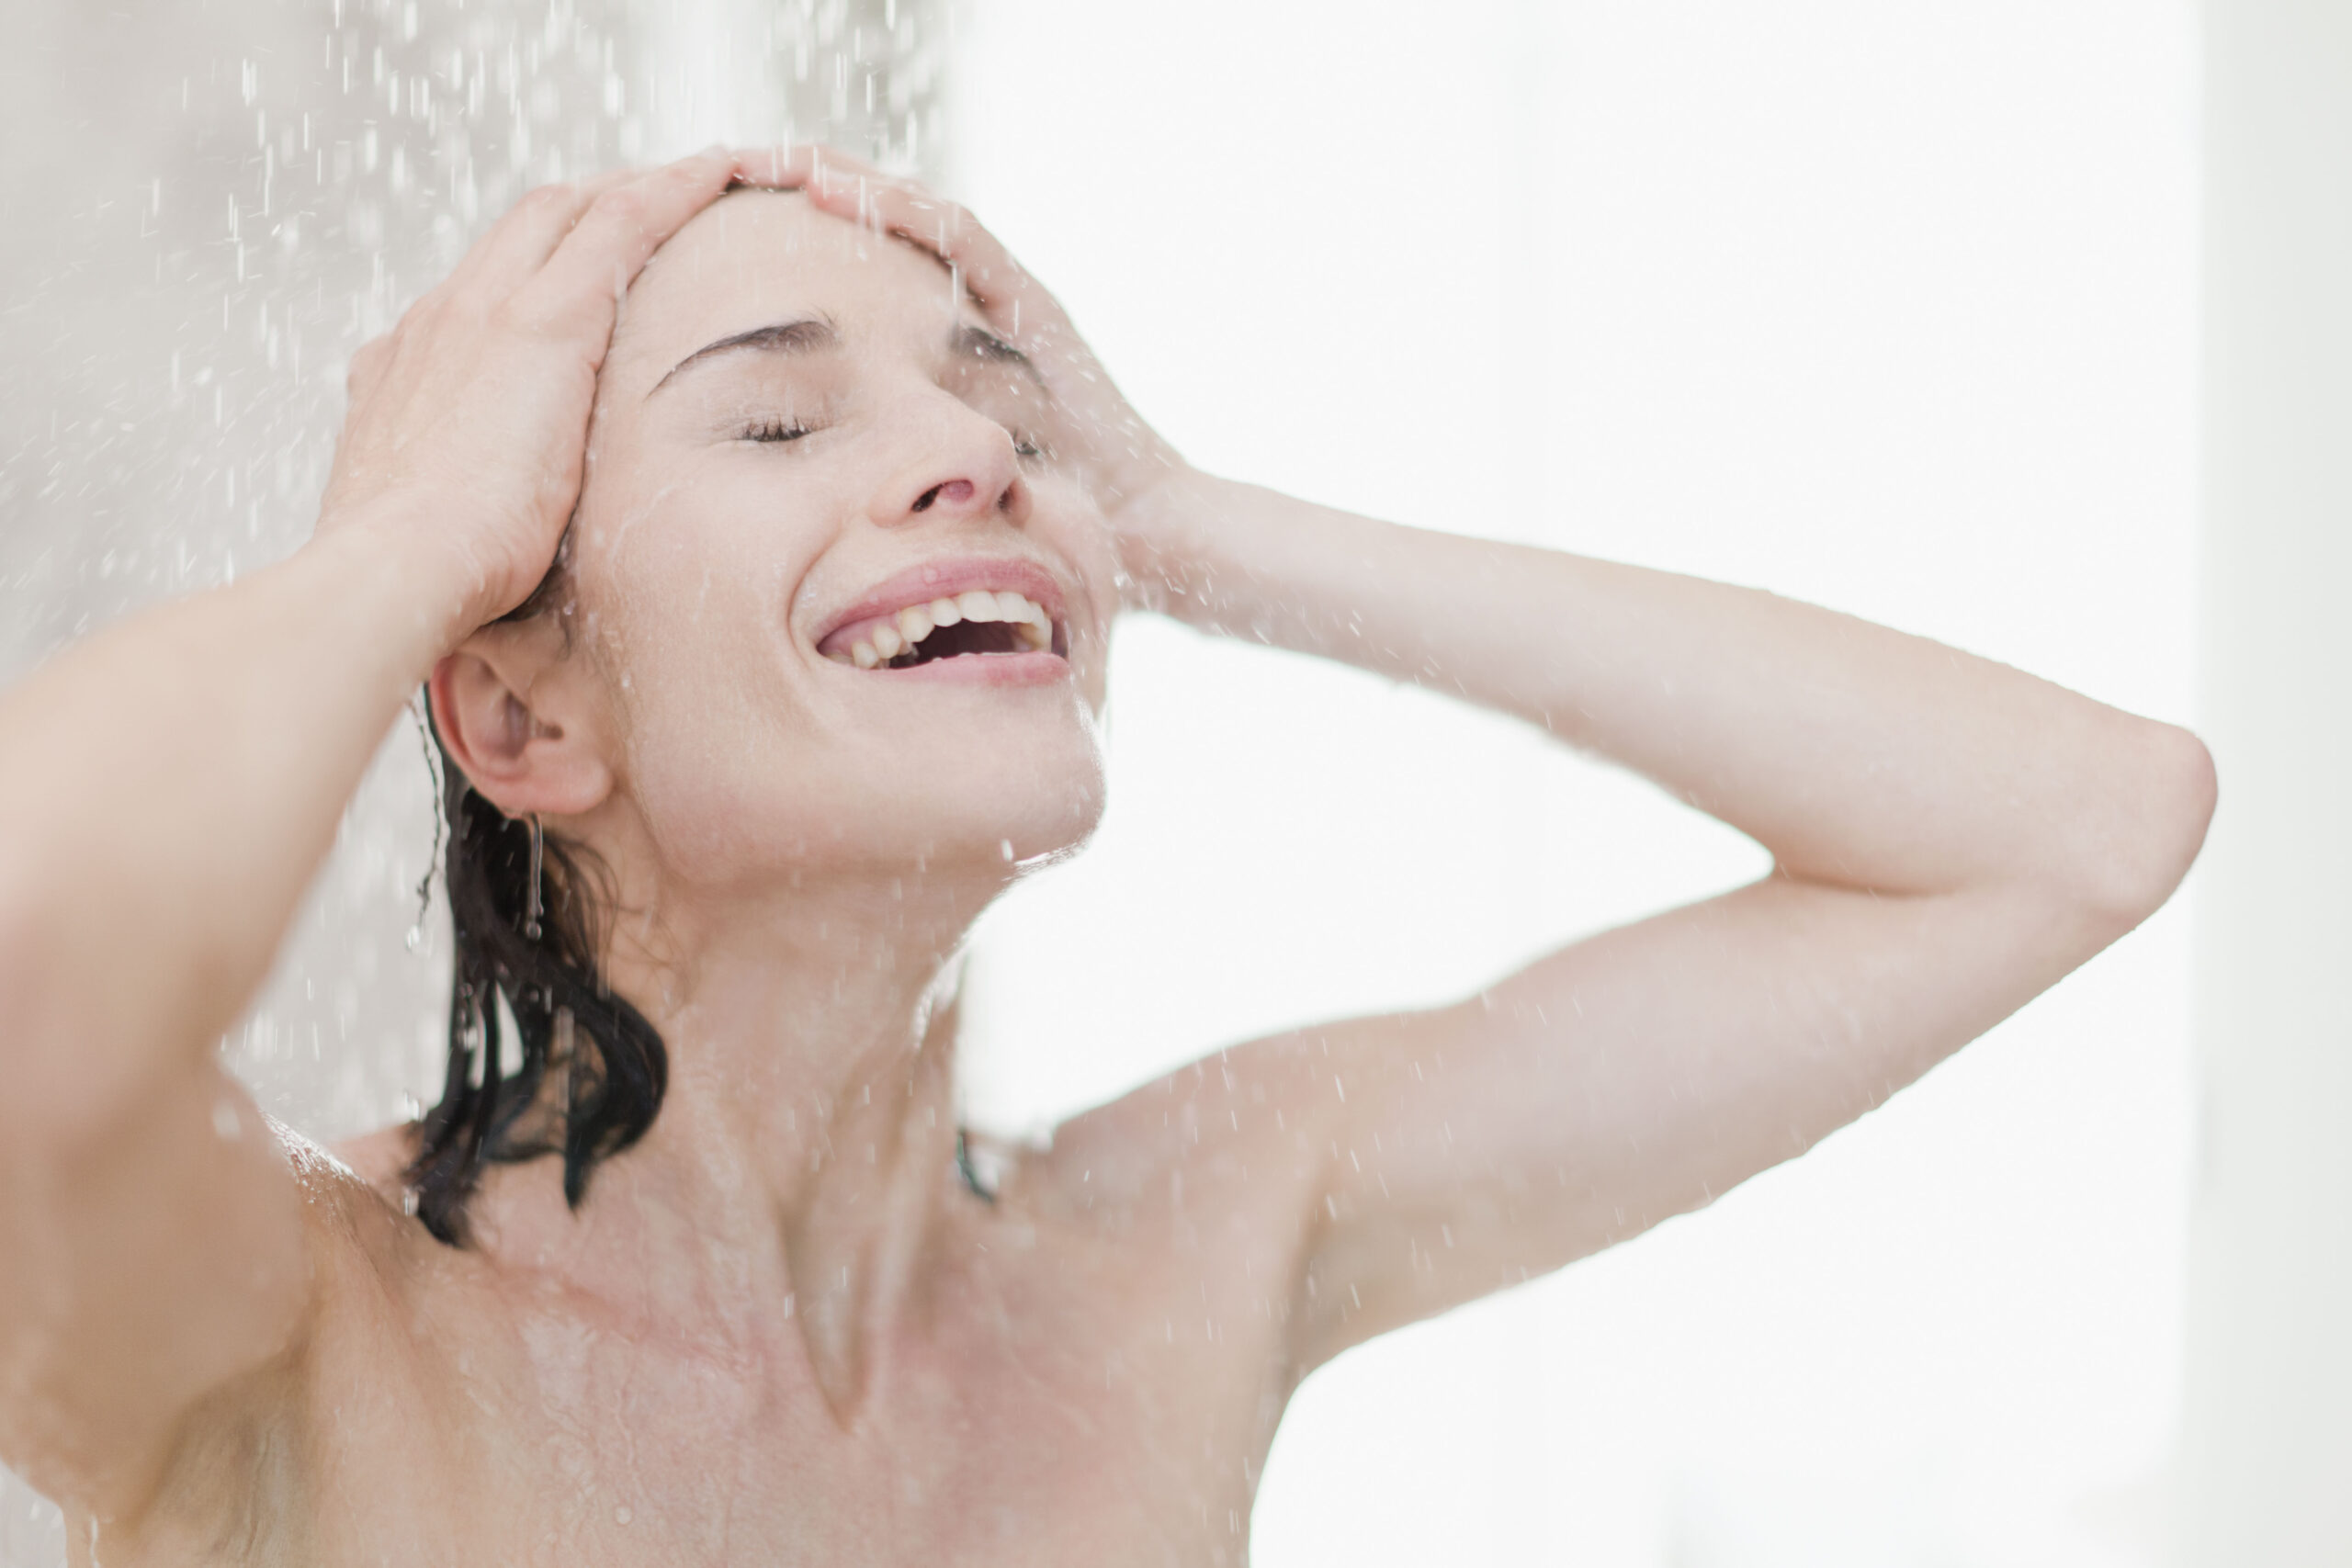 Can a shower cure a hangover